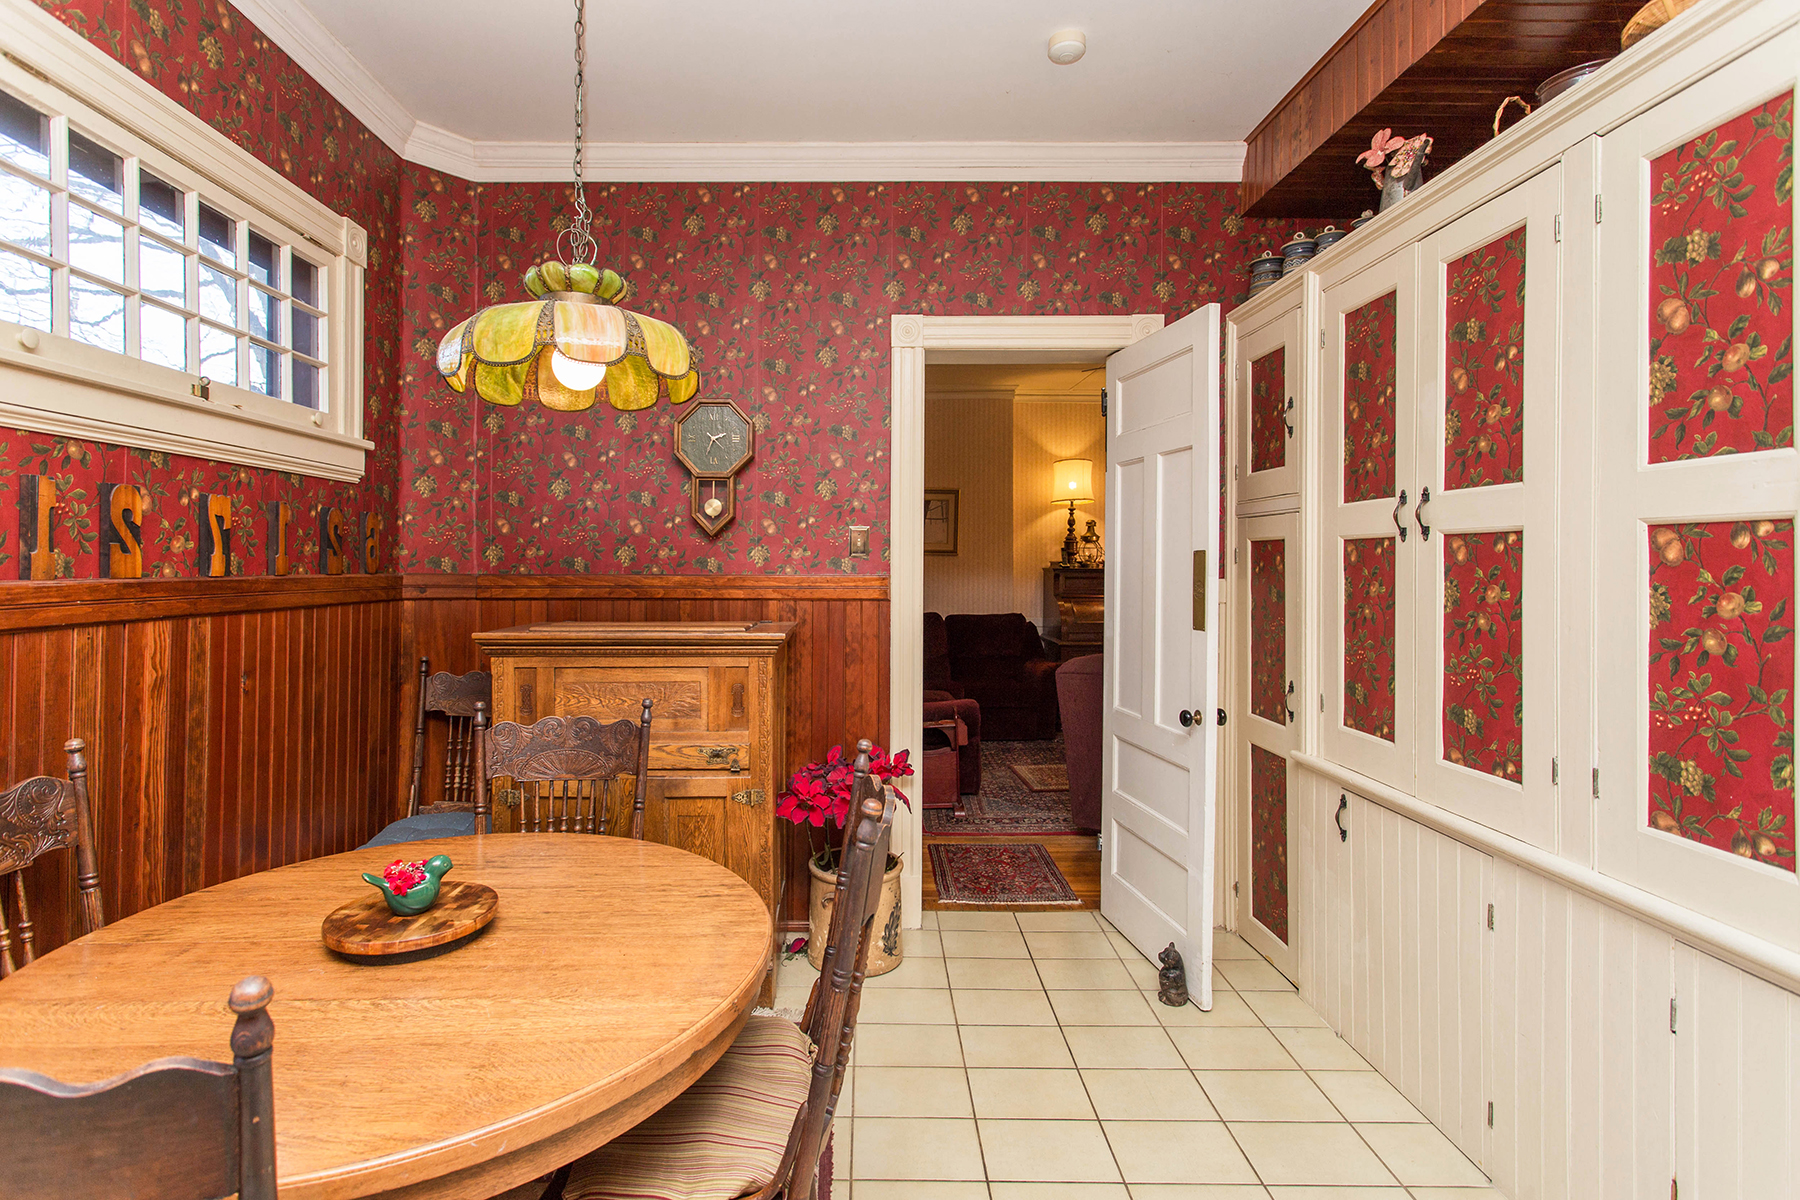 Additional photo for property listing at Exquisite Saratoga Trackside Victorian 203  Union Av Saratoga Springs, New York 12866 États-Unis